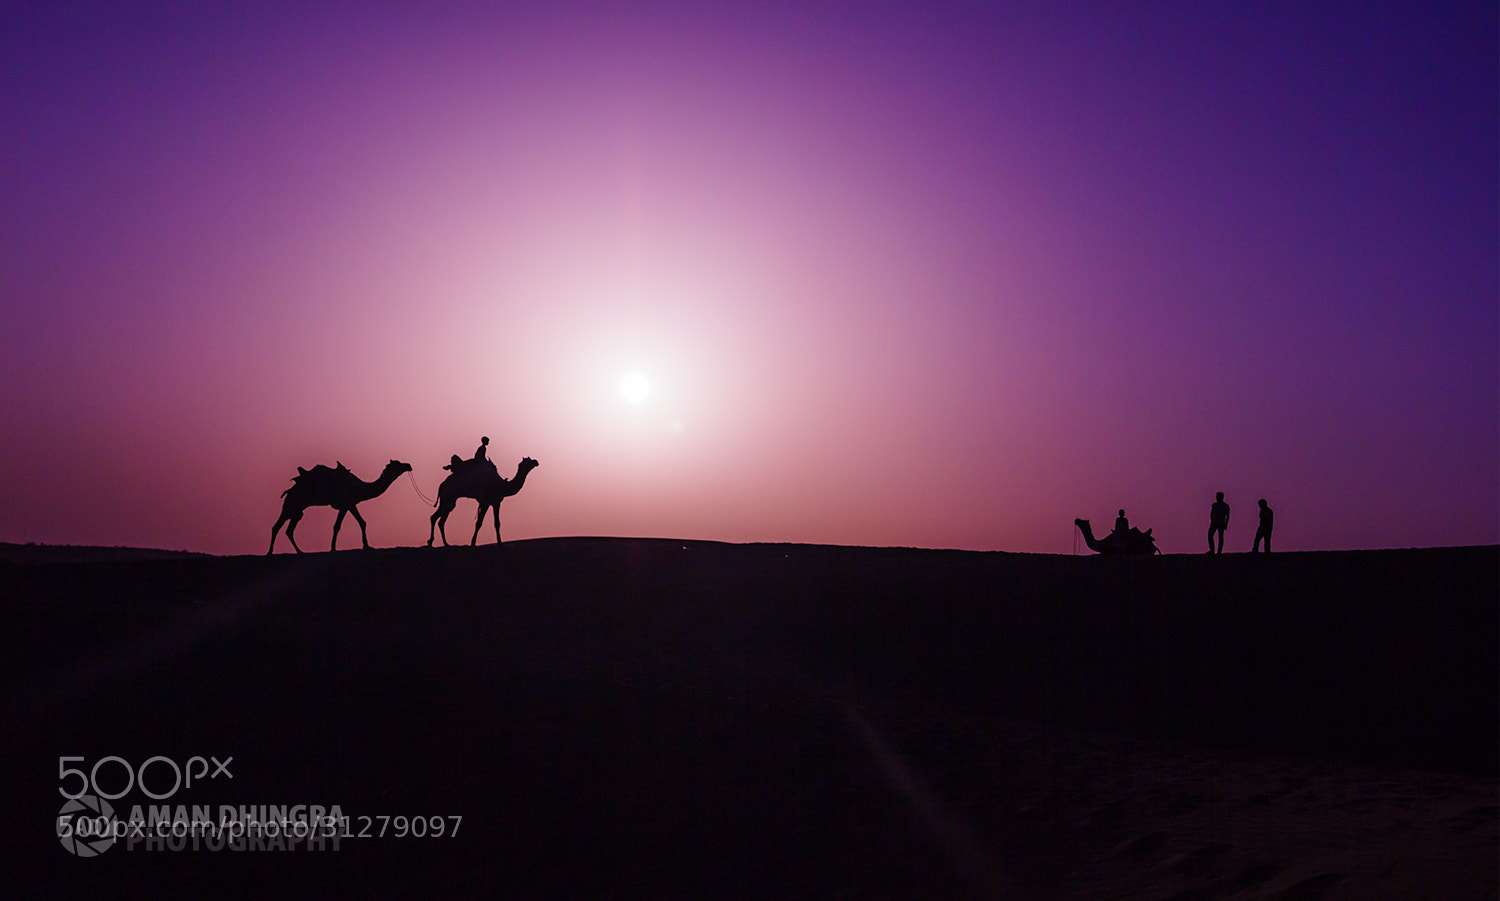 Photograph Lost in the Desert 2 by Aman Dhingra on 500px